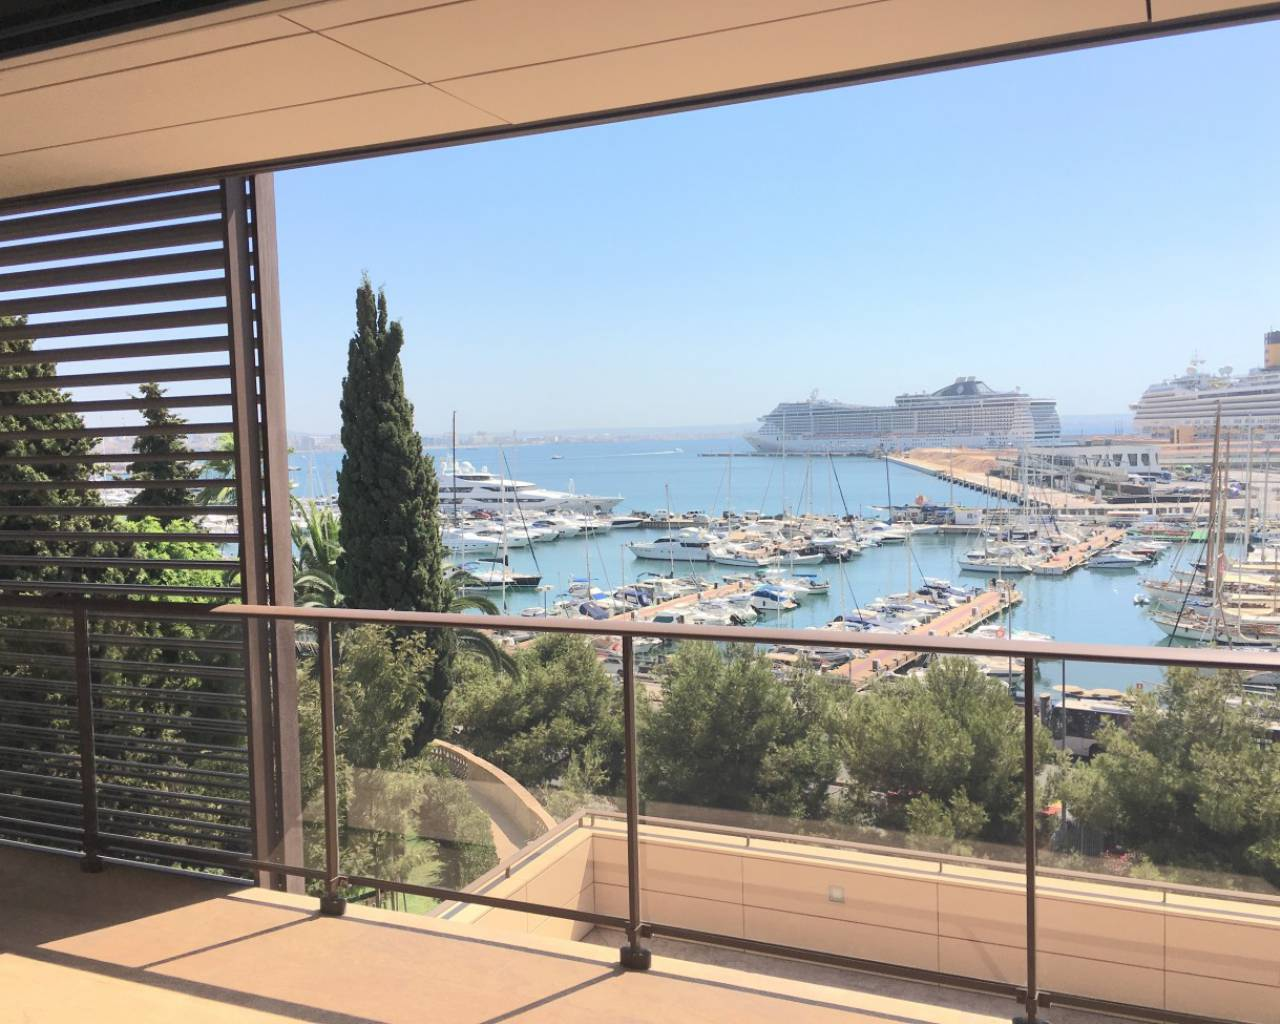 Apartment - For Rent - Palma de Mallorca - Palma De Mallorca